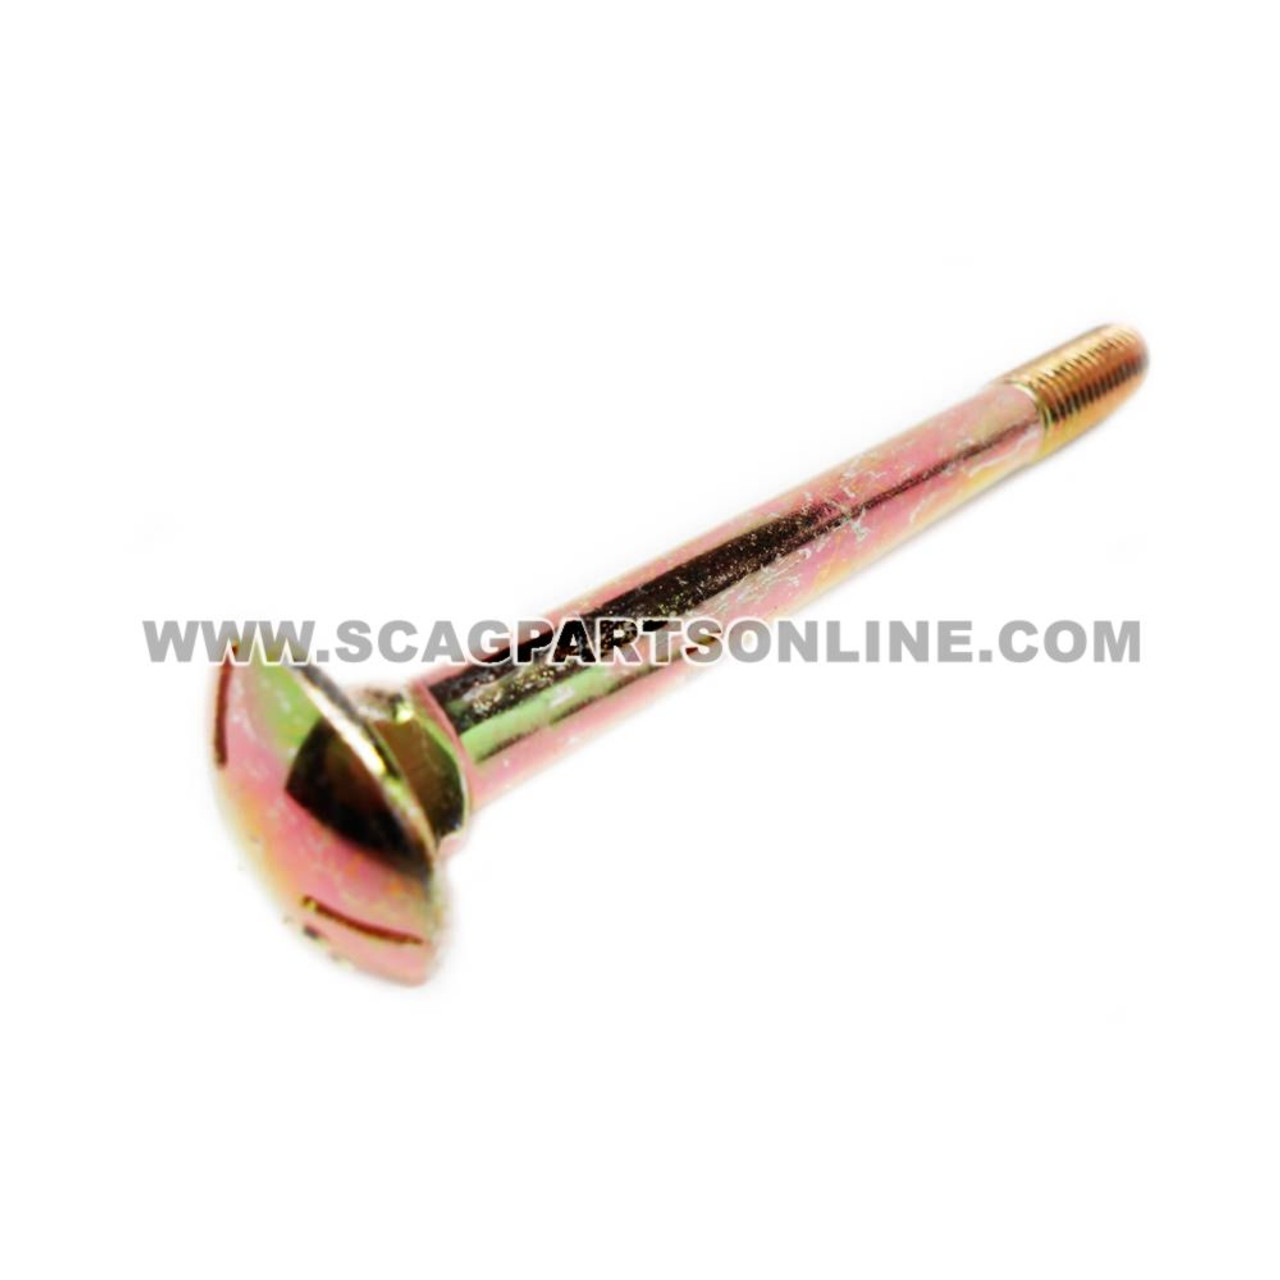 Scag CARRIAGE BOLT, 3/8-16 X 4.00 04003-26 - Image 1